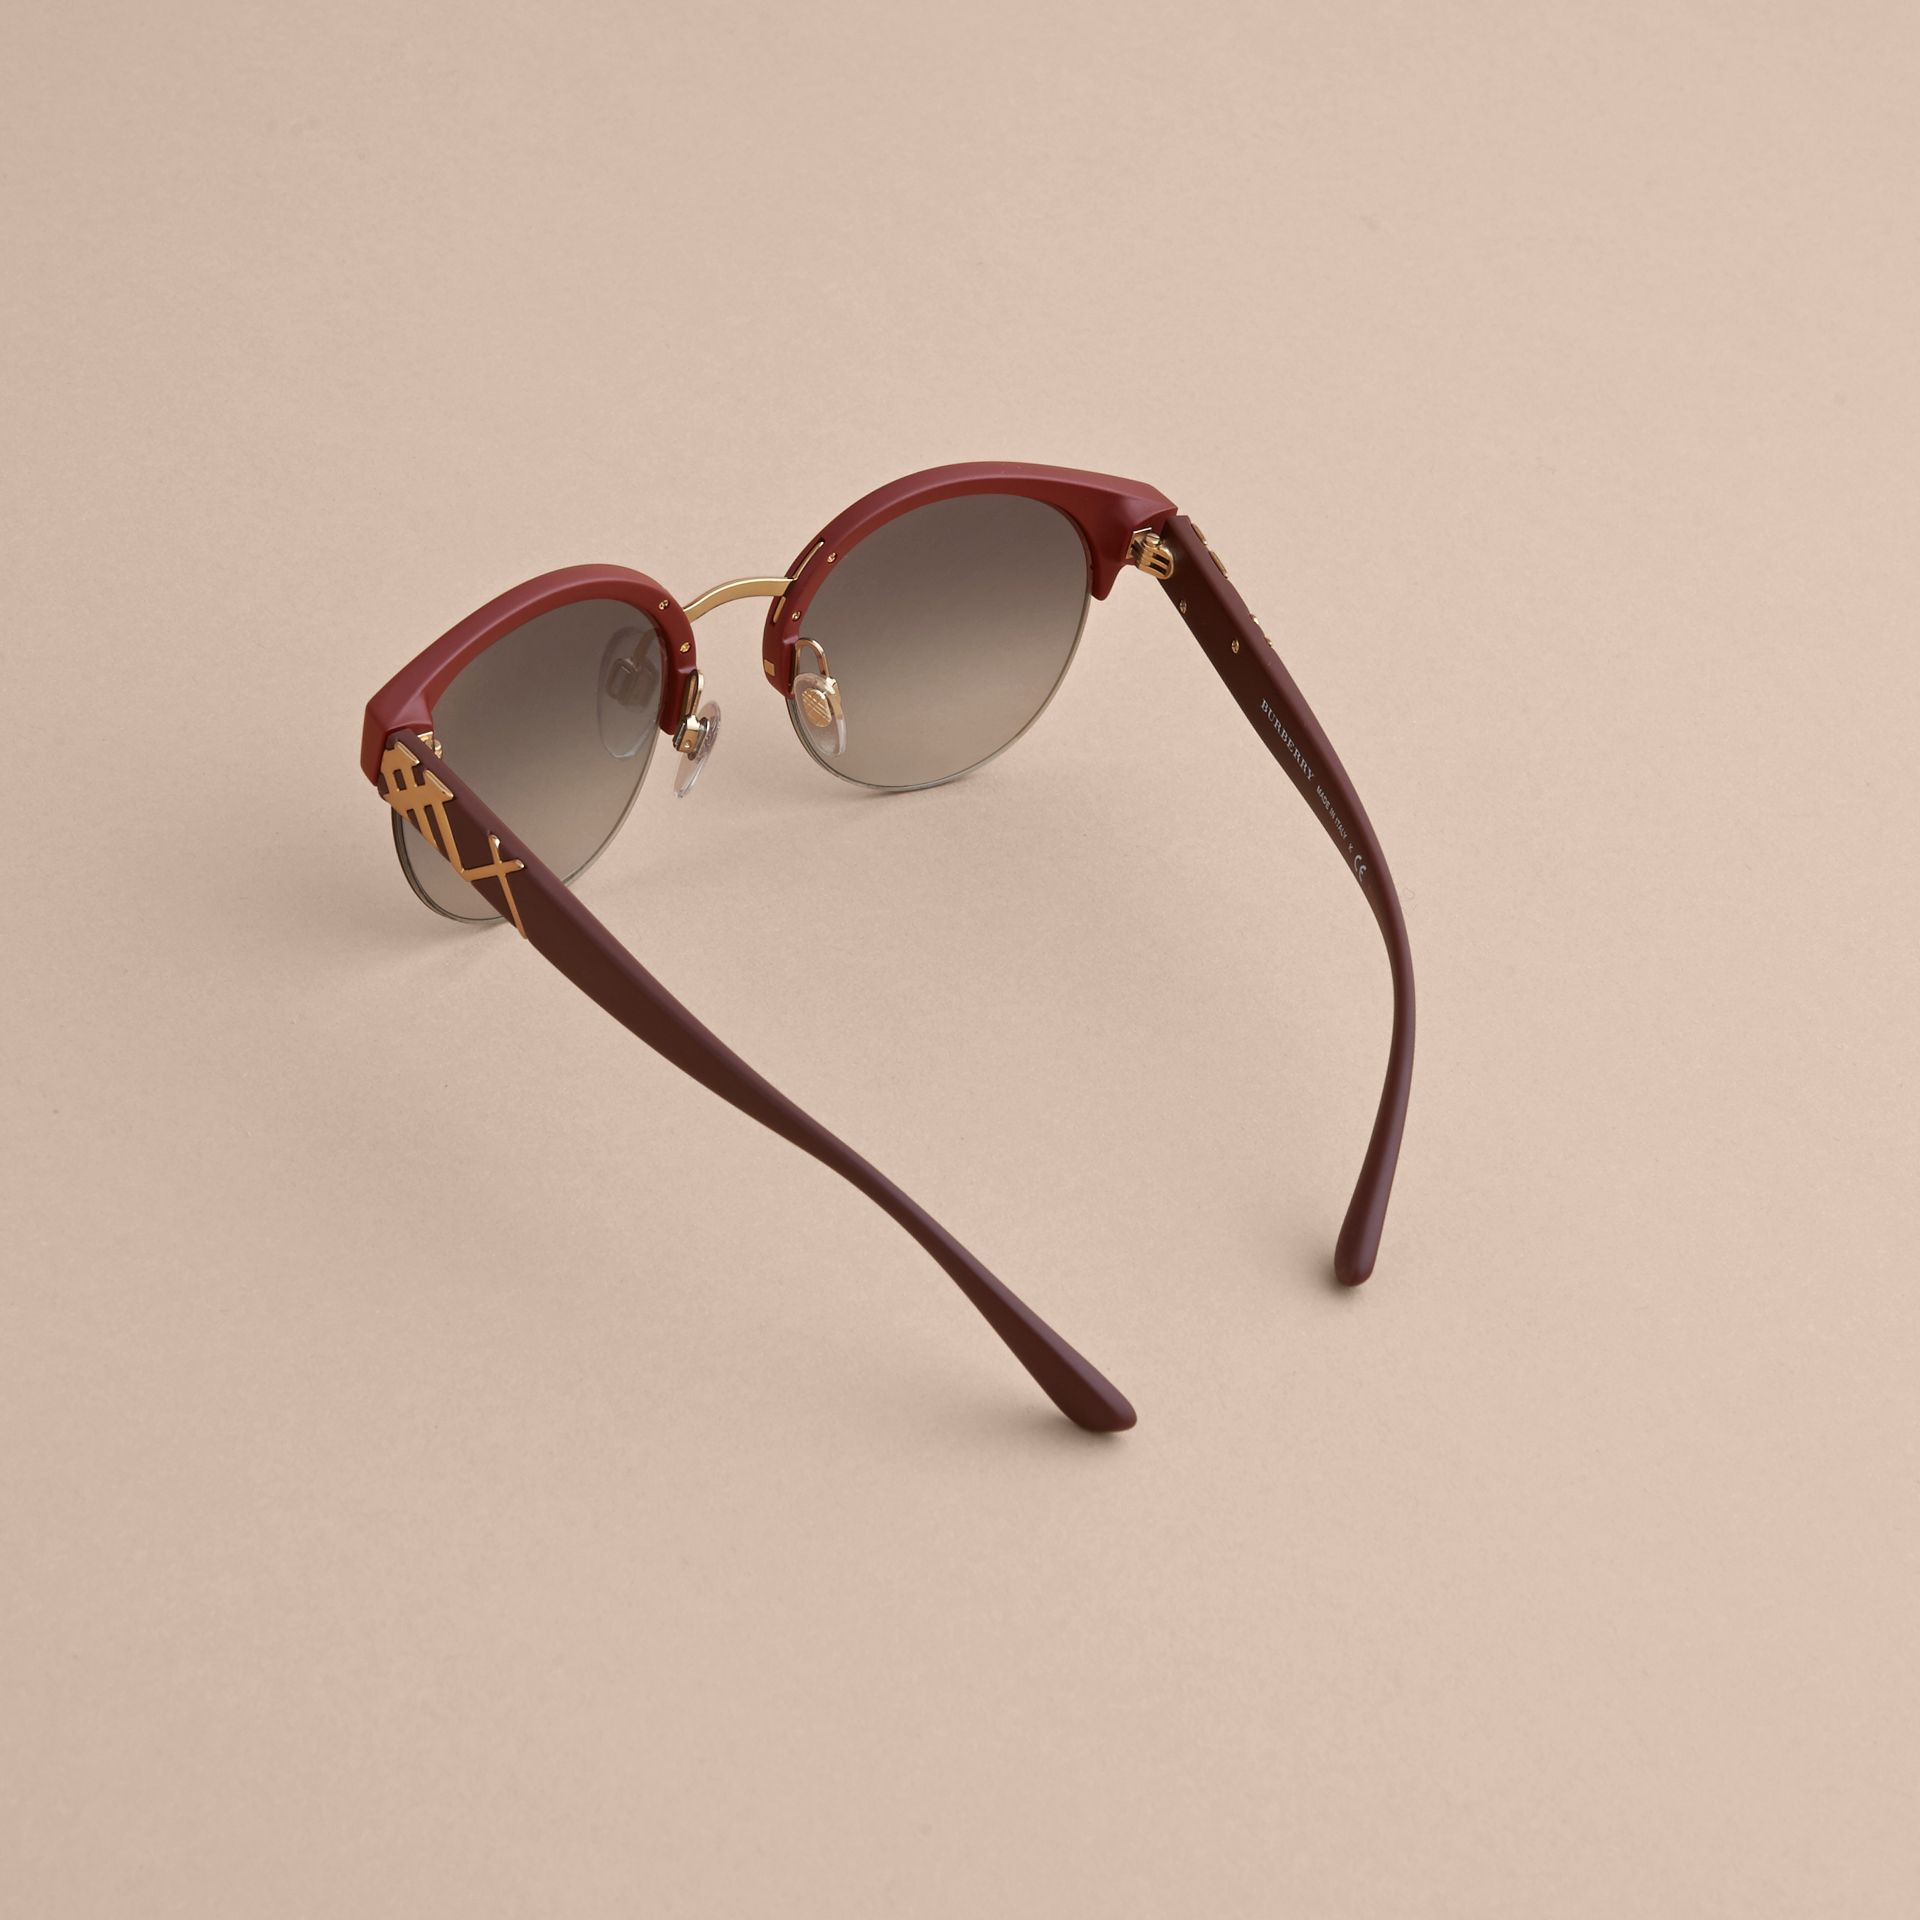 Check Detail Round Half-frame Sunglasses in Burgundy - Women | Burberry - gallery image 4